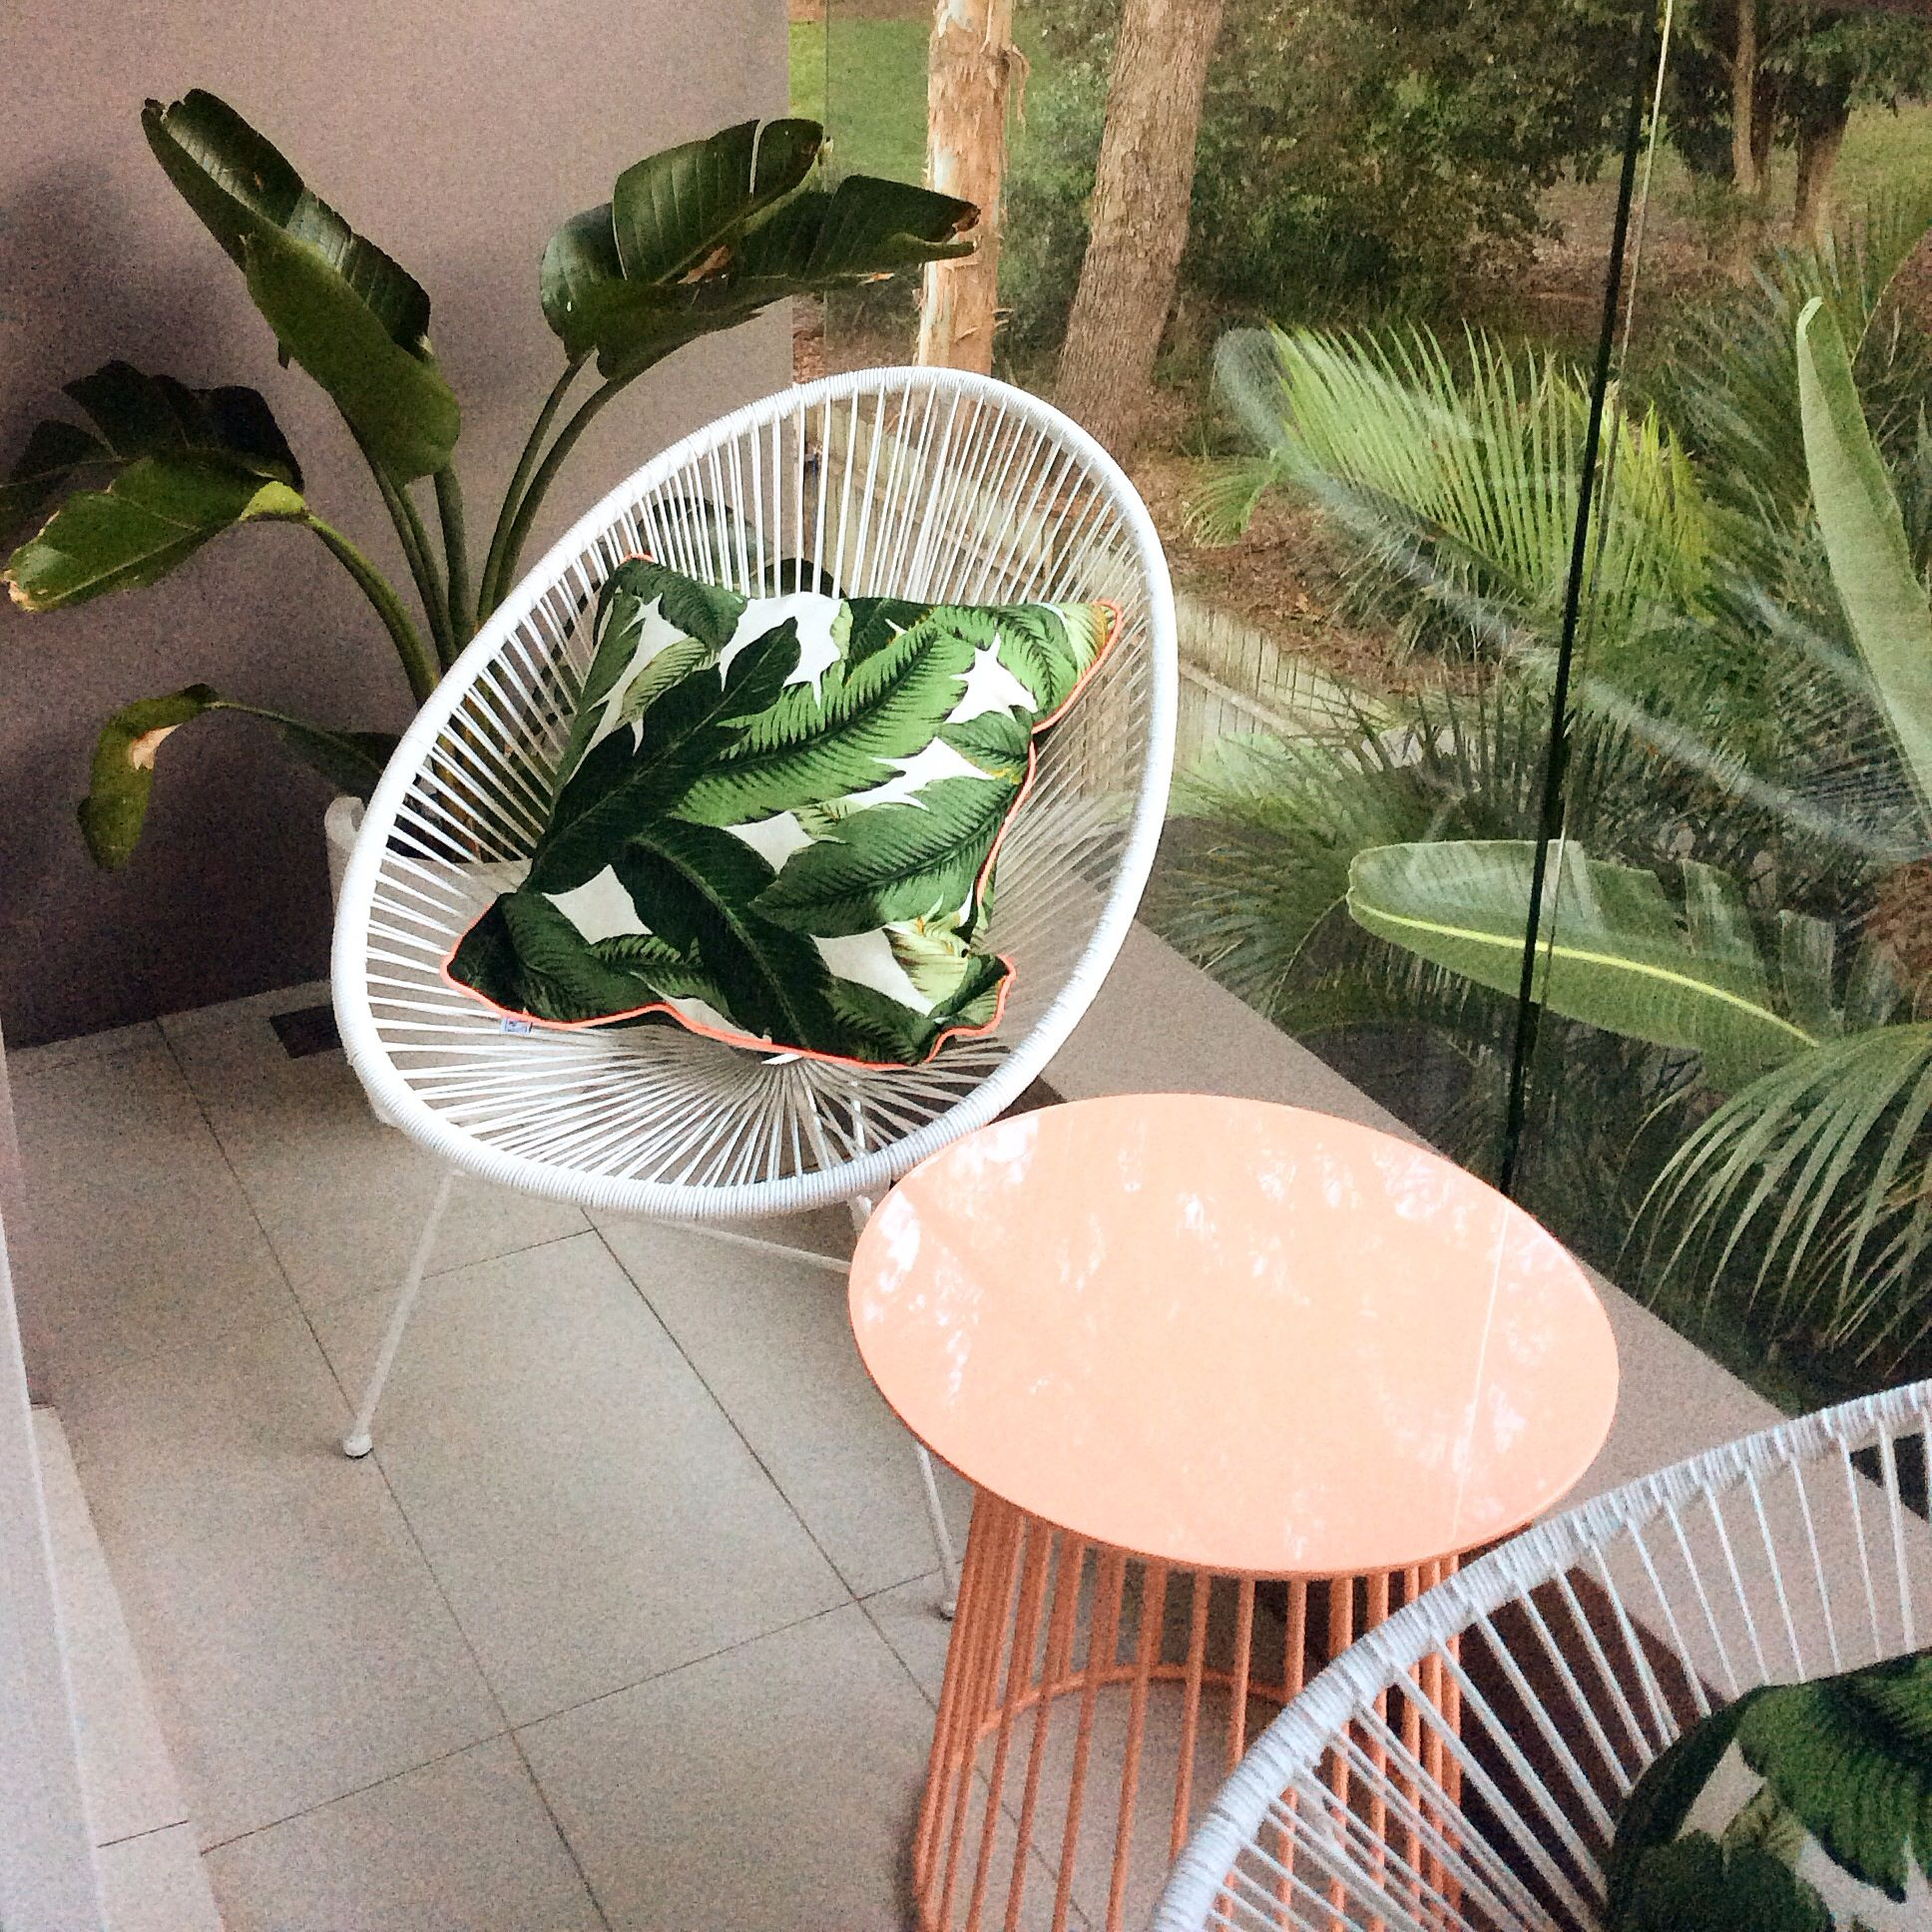 outdoor furniture small balcony. Outdoor Design: For Small Balcony, Urban Design, Apartment, White Acapulco Chairs Furniture Balcony O